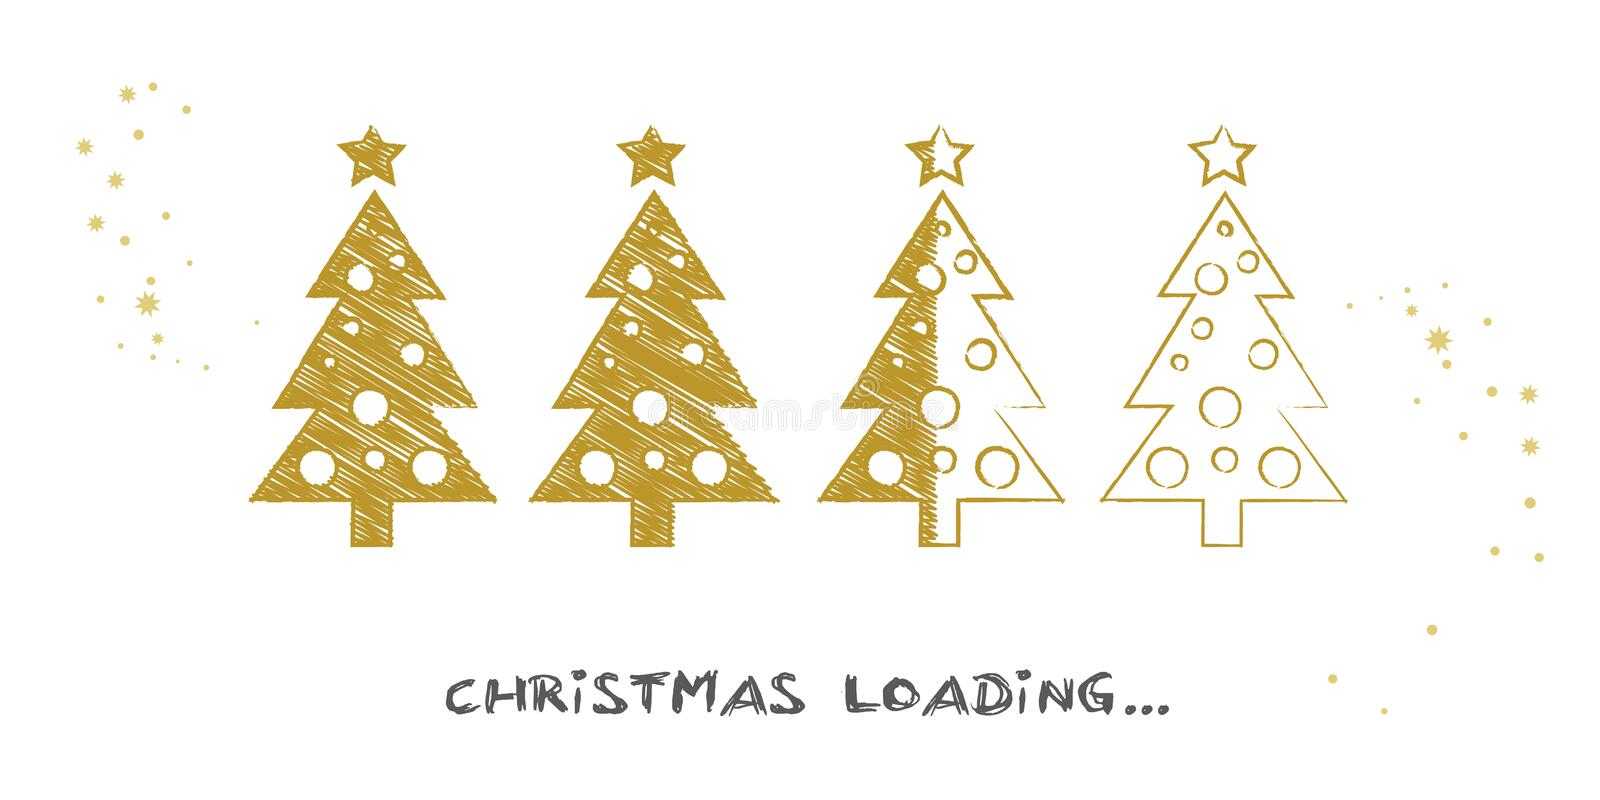 Christmas is loading background with christmas tree. Progress bar with Christmas tree showing loading of christmas illustration royalty free illustration